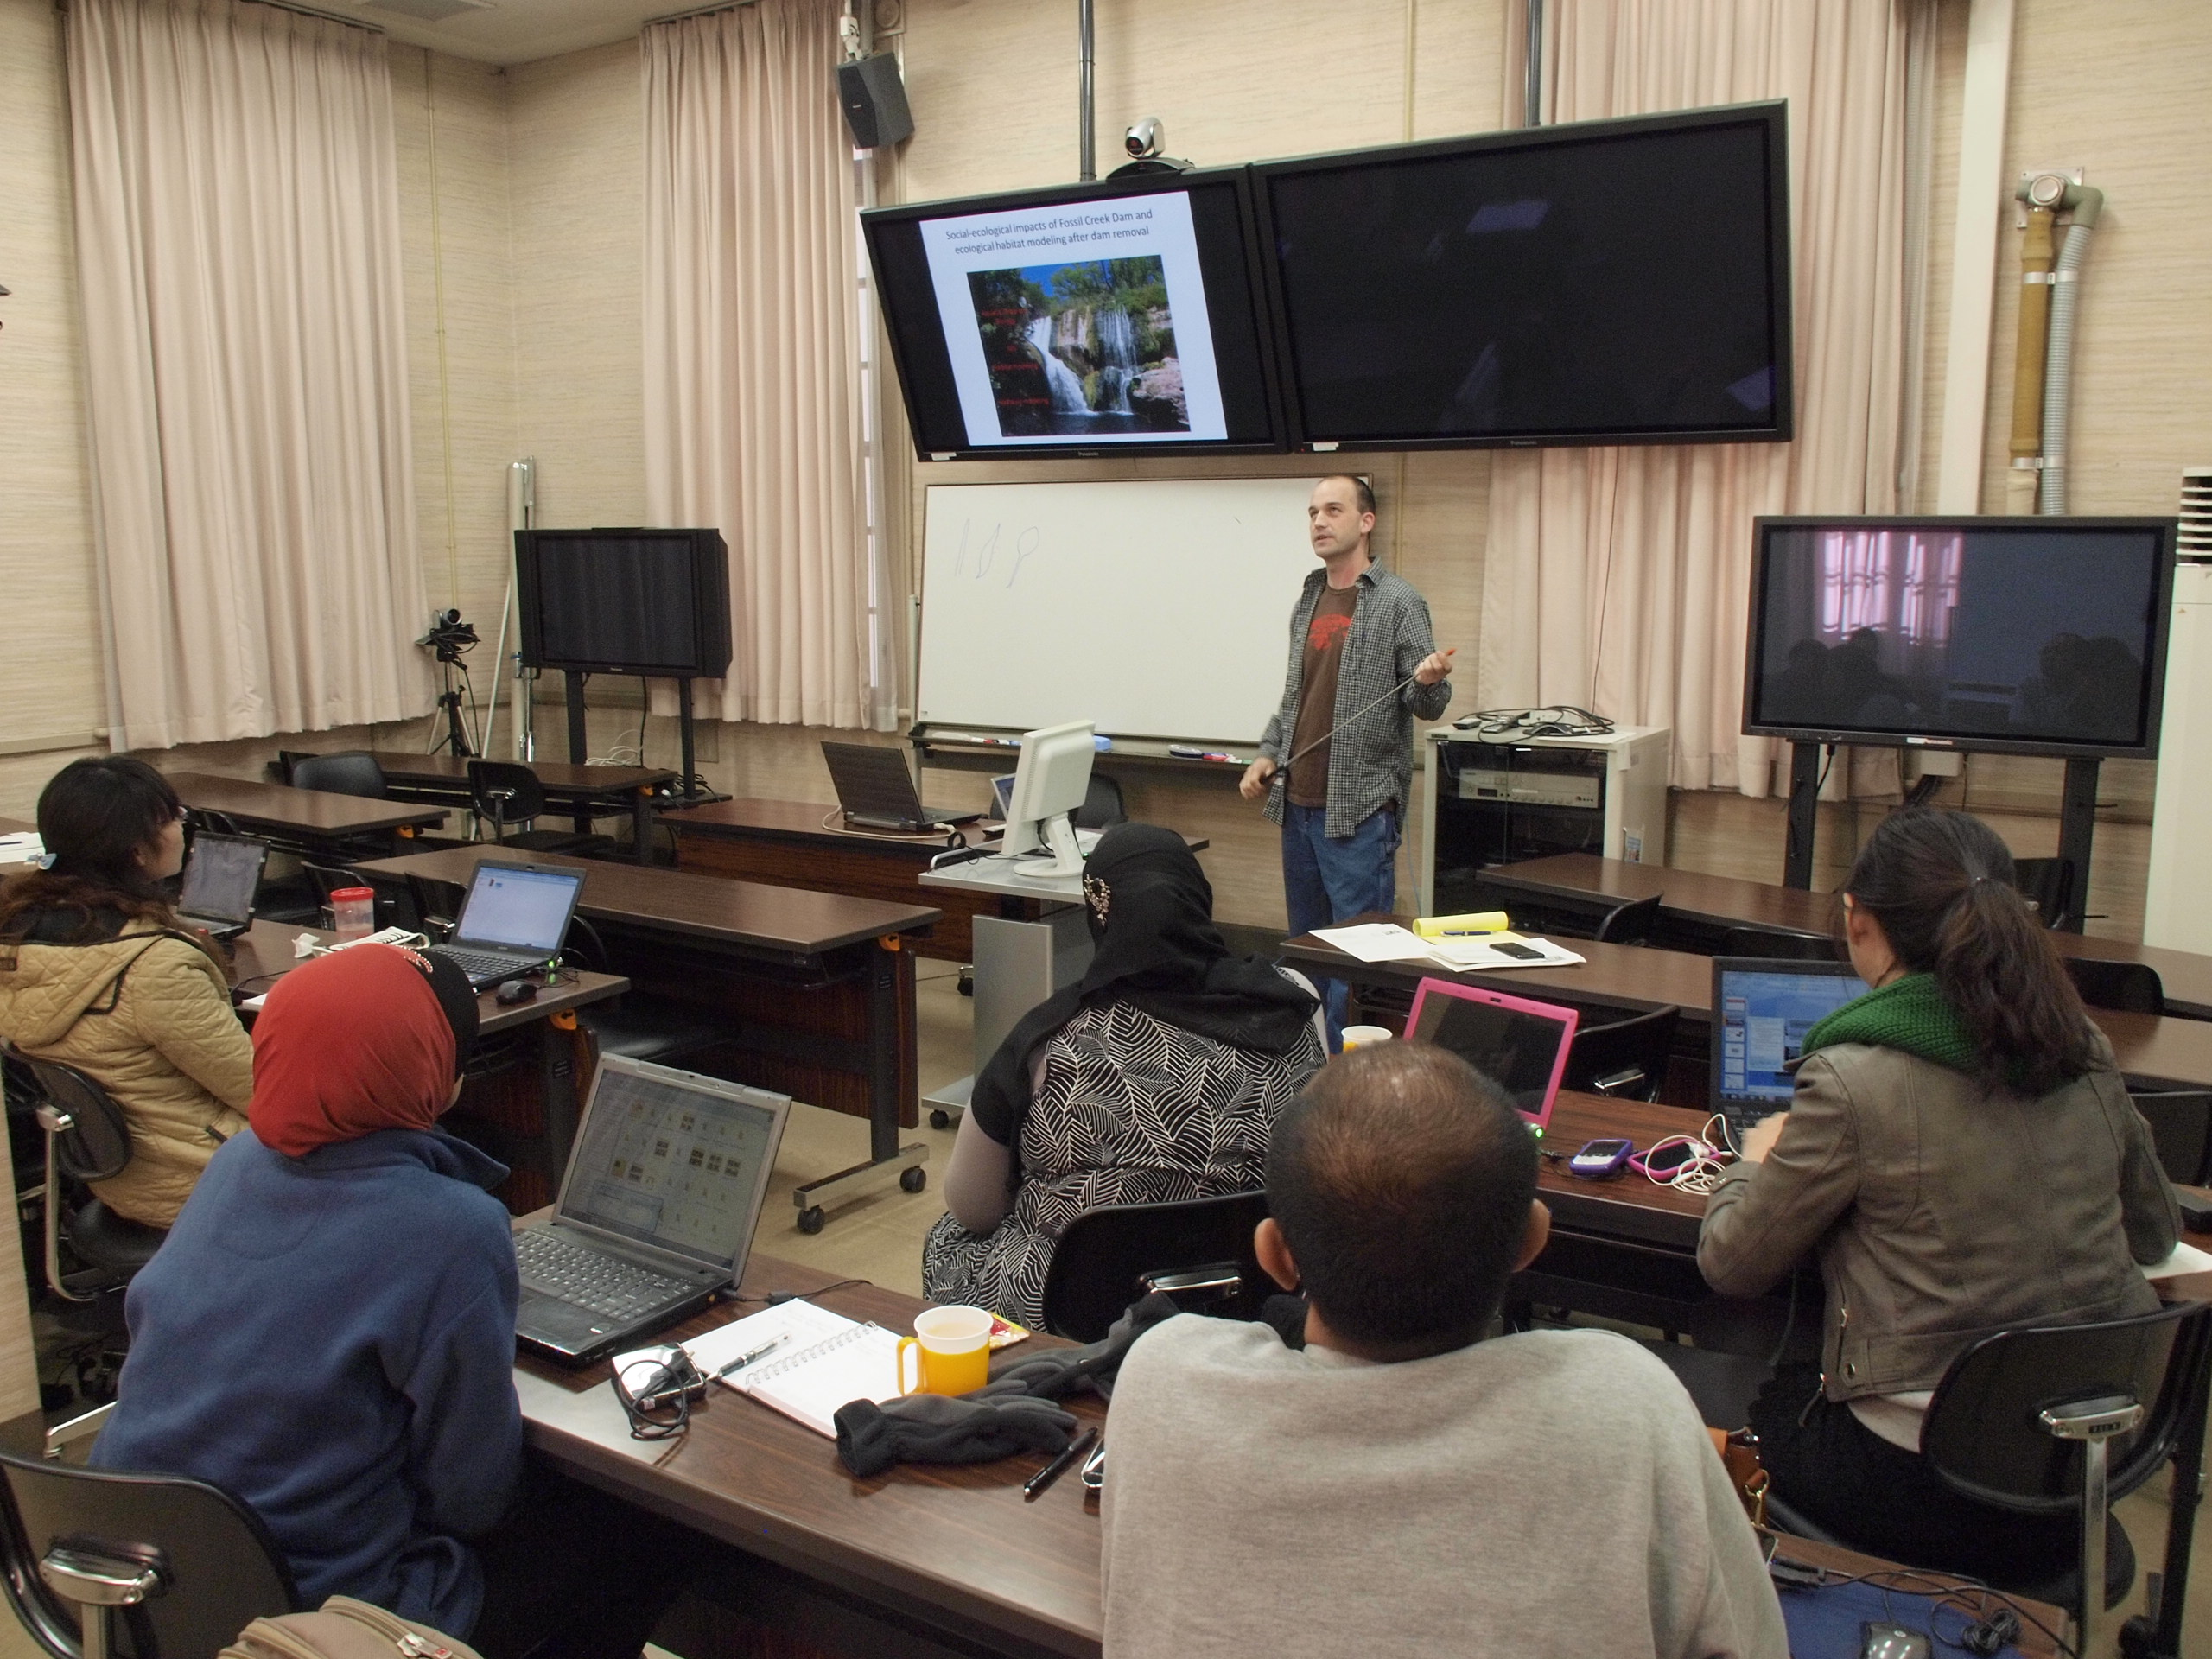 Chas Jones teaches a class in Hokkaido University, in Sapporo, Japan. His teaching philosophy includes incorporating the diverse experiences of his students. Photo.